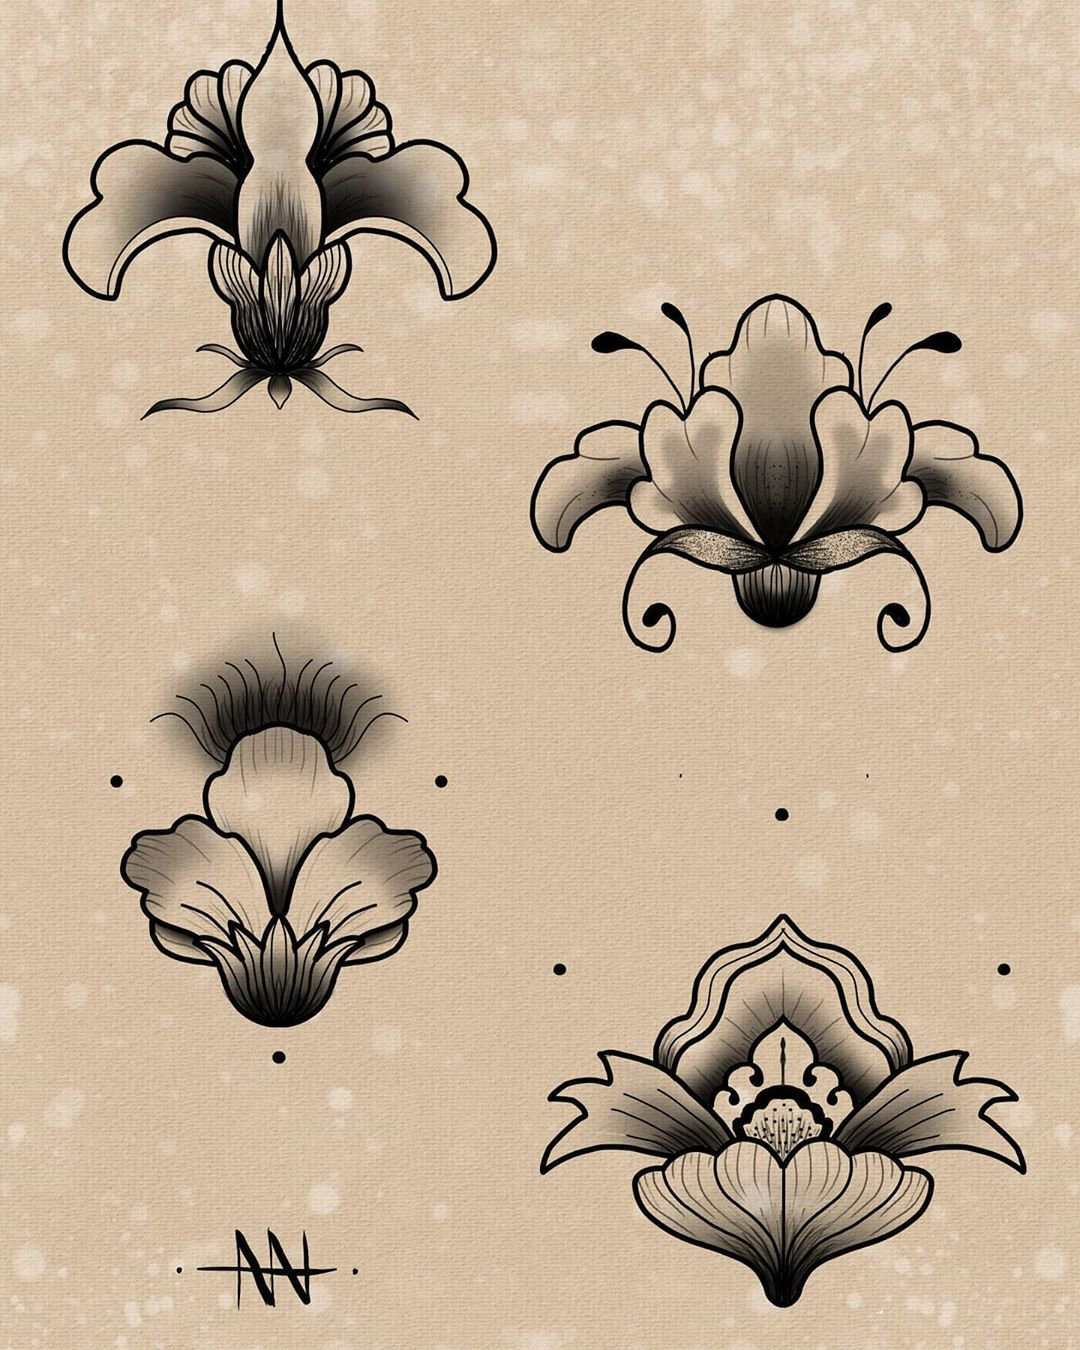 ~Las Florecitas ~ Flashs disponibles . . . . #tattooflash #art #instadraw #instart #picoftheday #instagood #pencil #paper #landscape #tattoodrawing #tattoolover #tattoopassion #tattoist #tattoogram #drawing #passion #drawinglife #illustration #artwork#artist #creative #occultart #darkart #blackworktattoo #neotraditional #lameuteinkworkshop